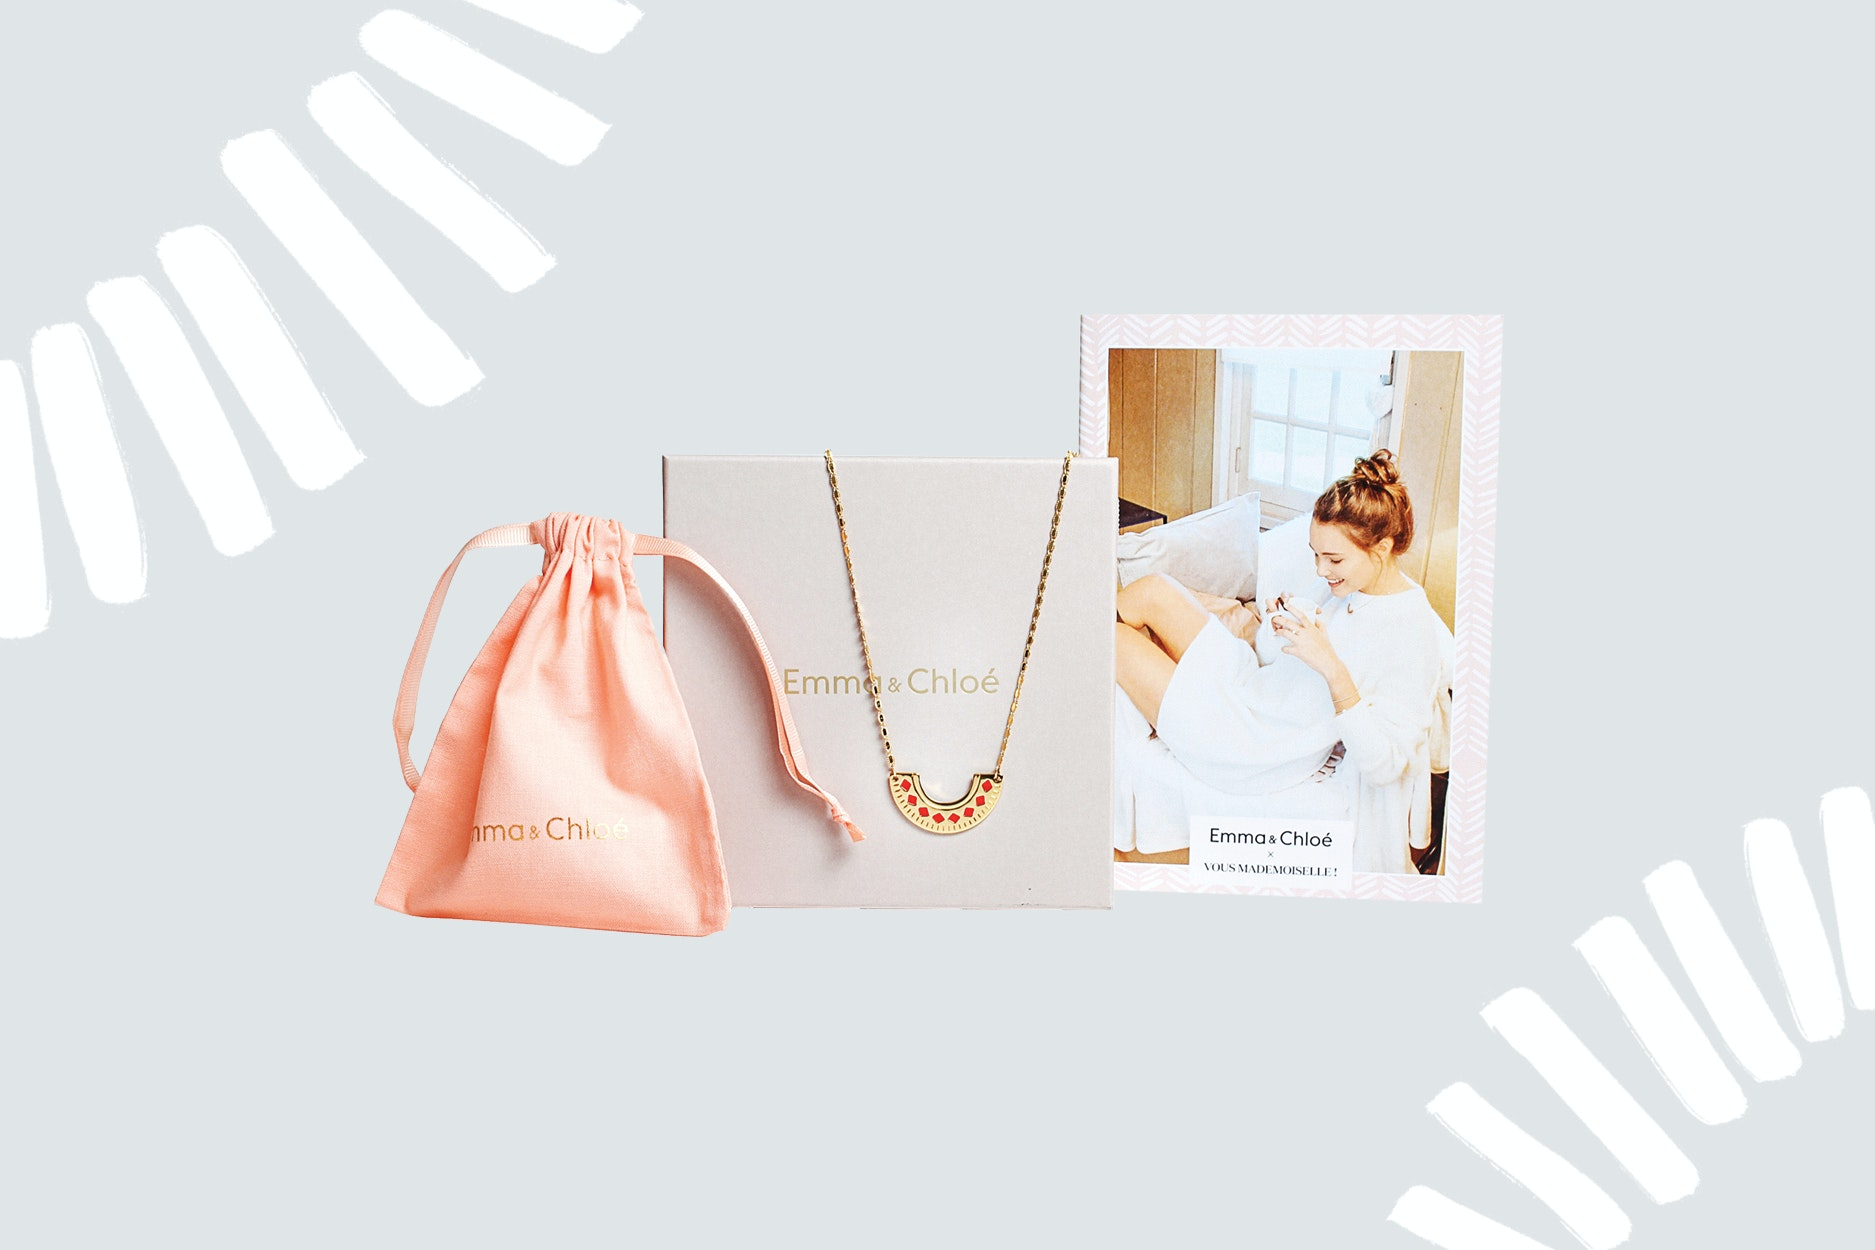 Can't go wrong with monthly French jewelry from Emma & Chloe.